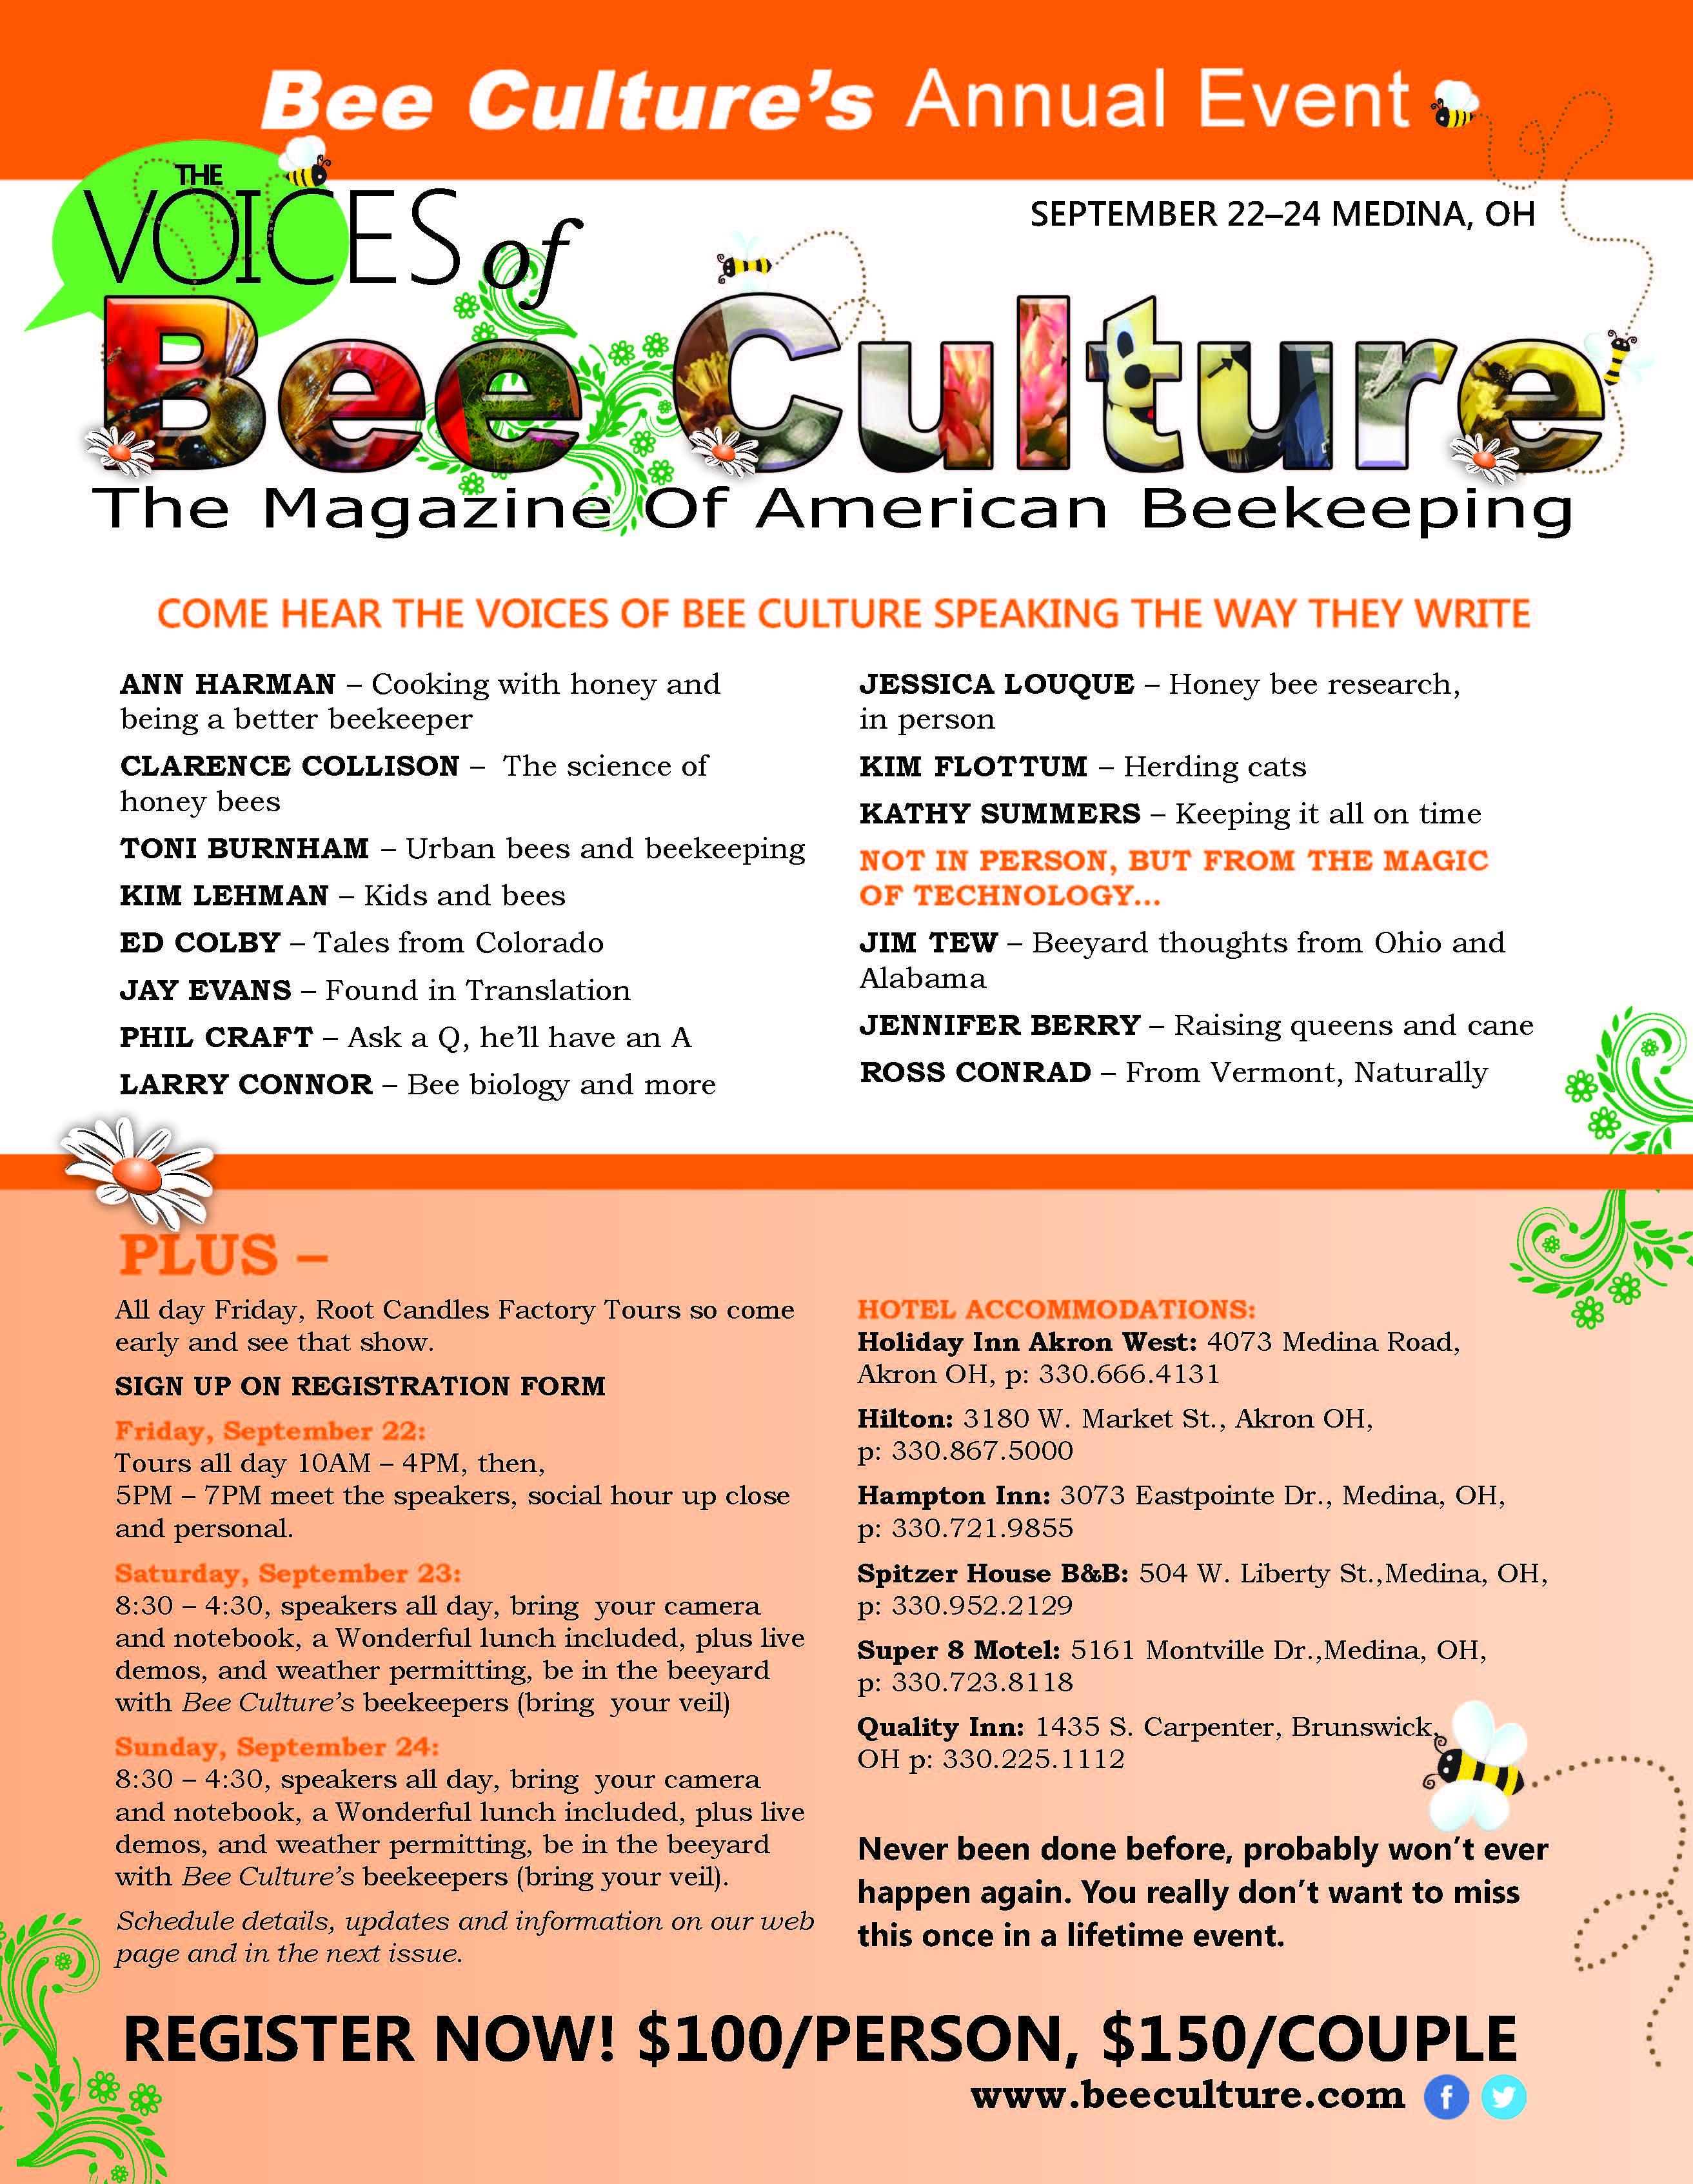 CATCH THE BUZZ – Come Listen to The Voices of Bee Culture